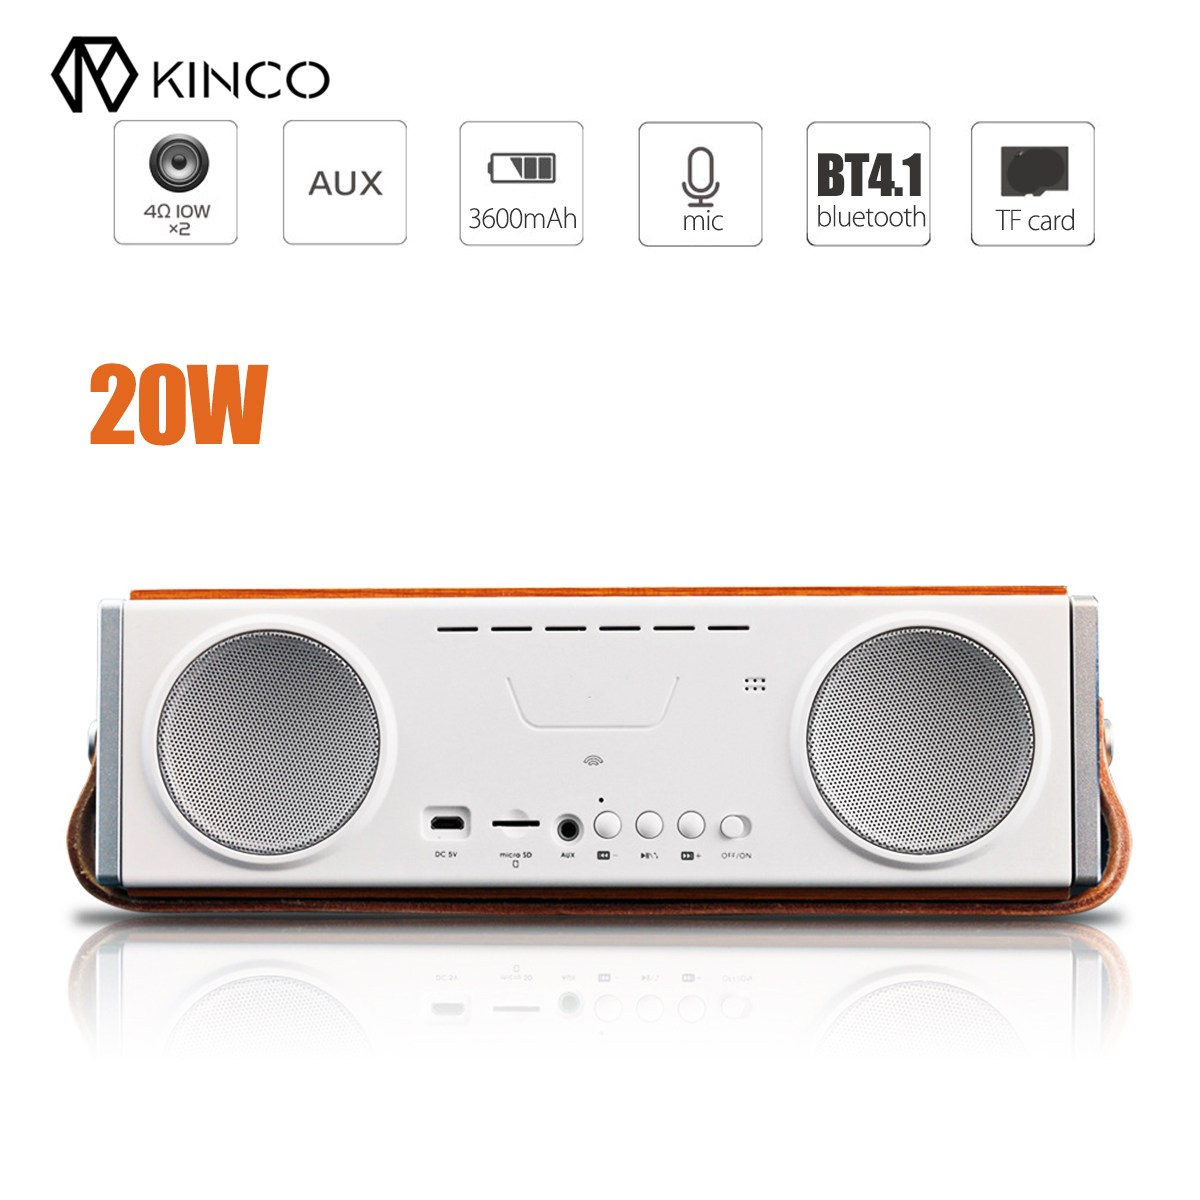 Kinco Elegant 20W Portable Wooden Bluetooth Wireless HiFi Dual Speaker Bass 4.1 Stereo Subwoofer Support Hifi TF USB SG a9 mini wireless bluetooth speaker w led hands free tf usb subwoofer loudspeakers portable 3 5mm mp3 stereo audio music player